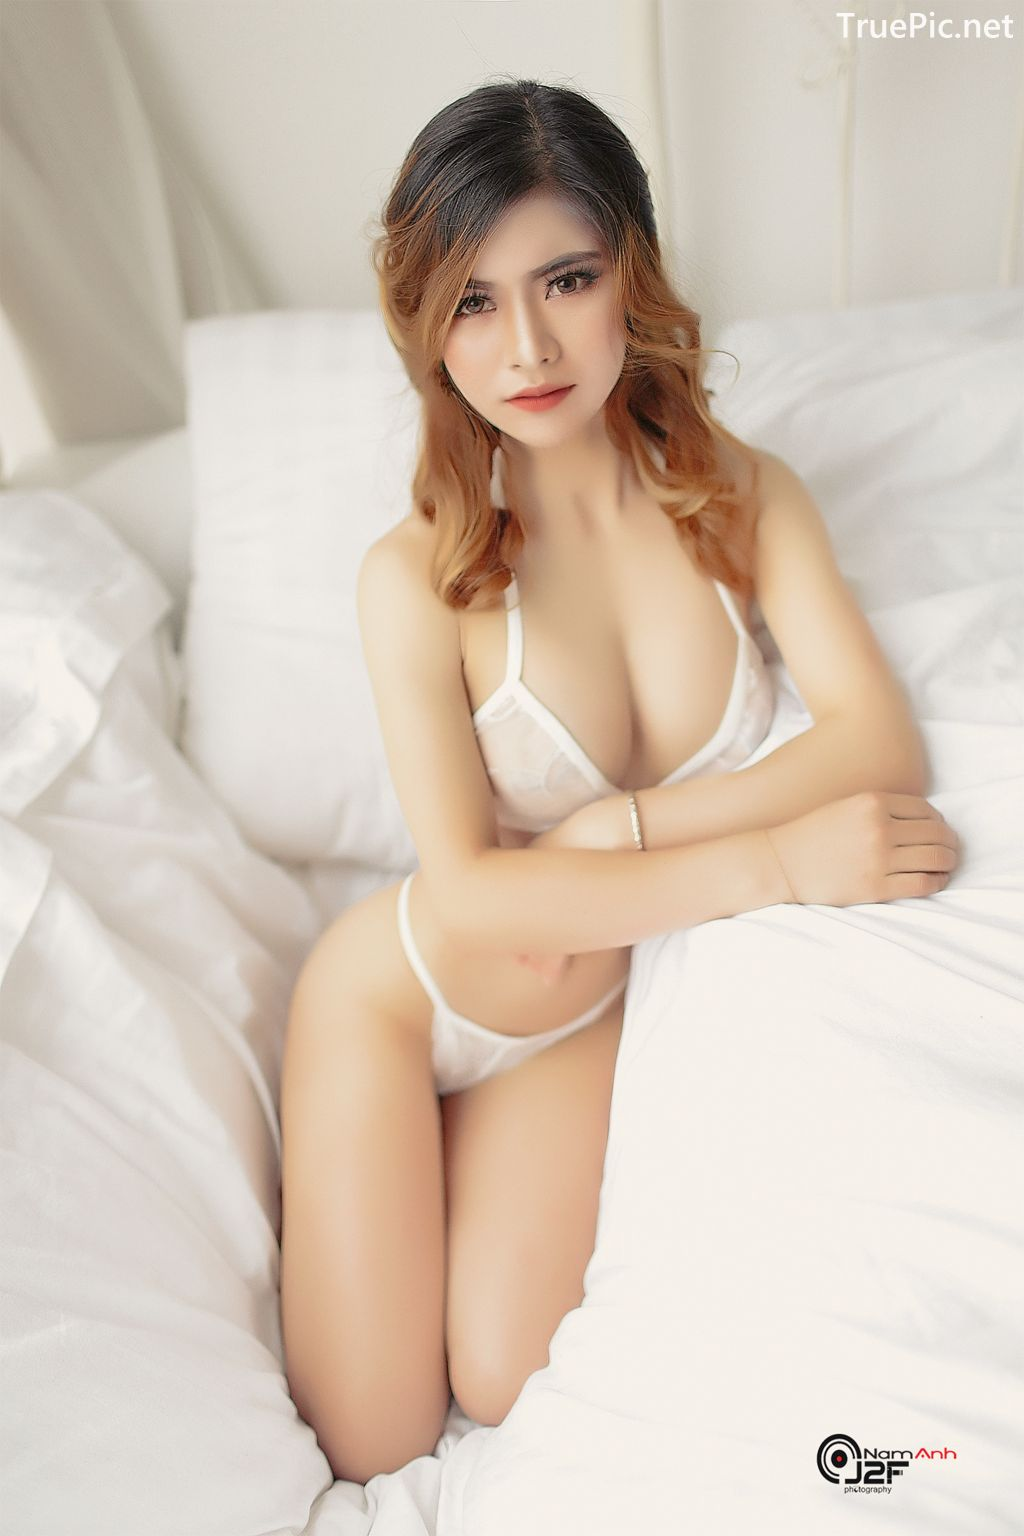 Image-Vietnamese-Model-Sexy-Beauty-of-Beautiful-Girls-Taken-by-NamAnh-Photography-5-TruePic.net- Picture-8